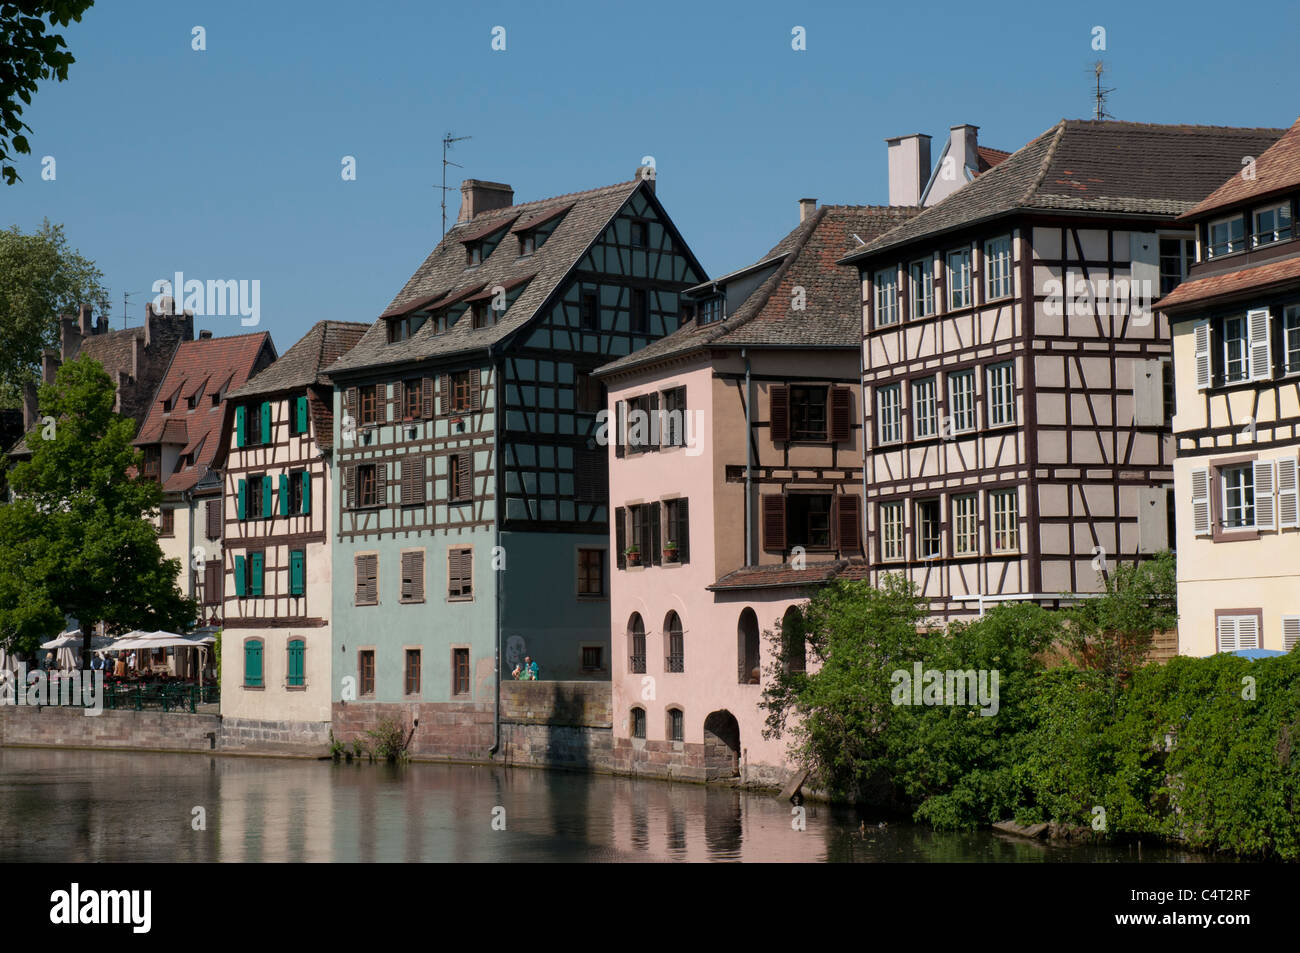 fachwerkh user im stadtteil petite france stra burg elsass frankreich europa stockfoto bild. Black Bedroom Furniture Sets. Home Design Ideas